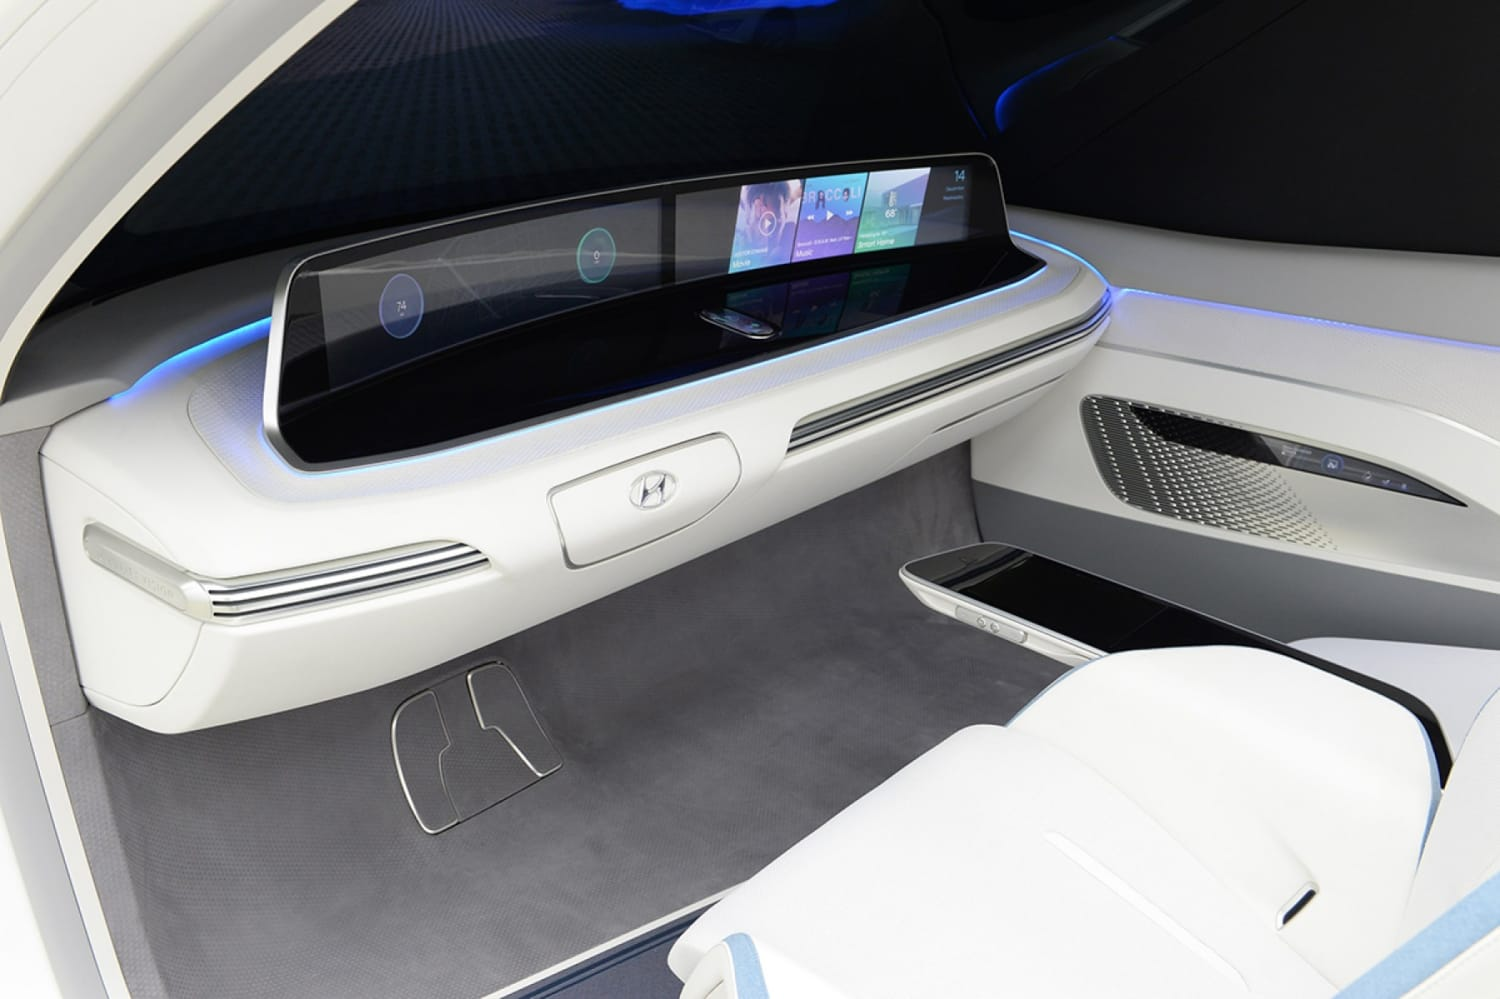 WEB 47119 HYUNDAI MOTOR DEMONSTRATES MOBILITY VISION WITH HYPER CONNECTED CAR AND